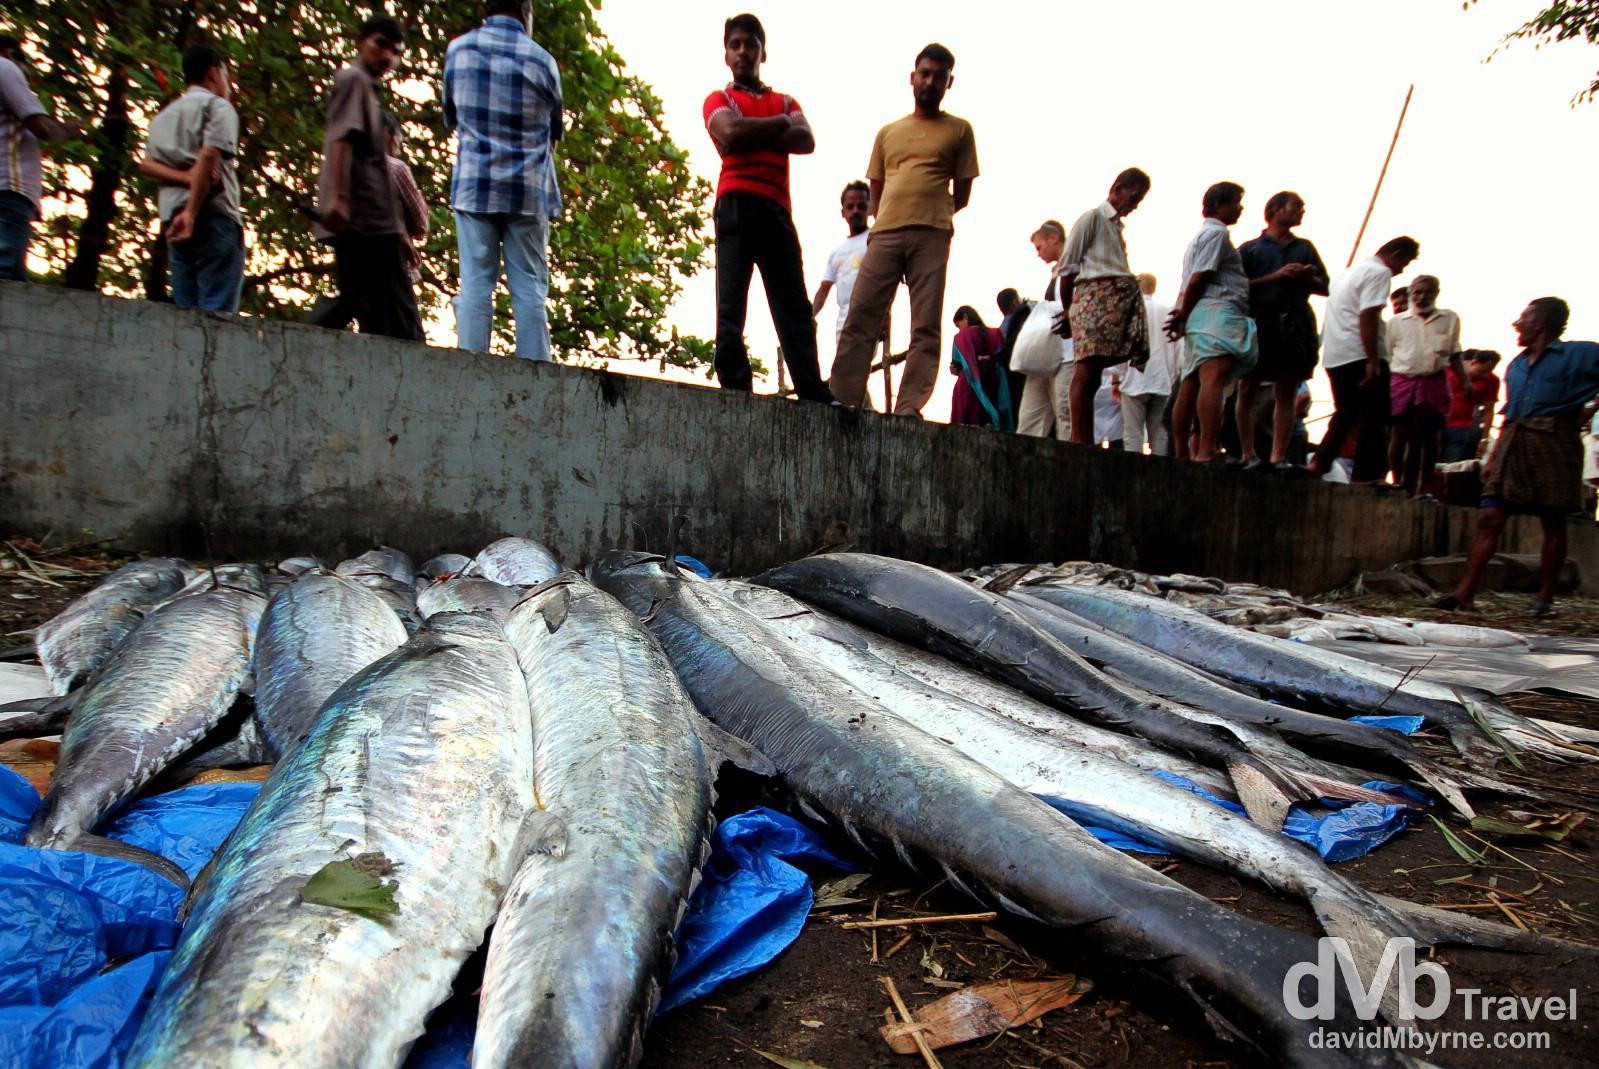 Fishing catch being analysed at the tip of Fort Kochi (Cochin), Kerala, India. September 19th 2012.